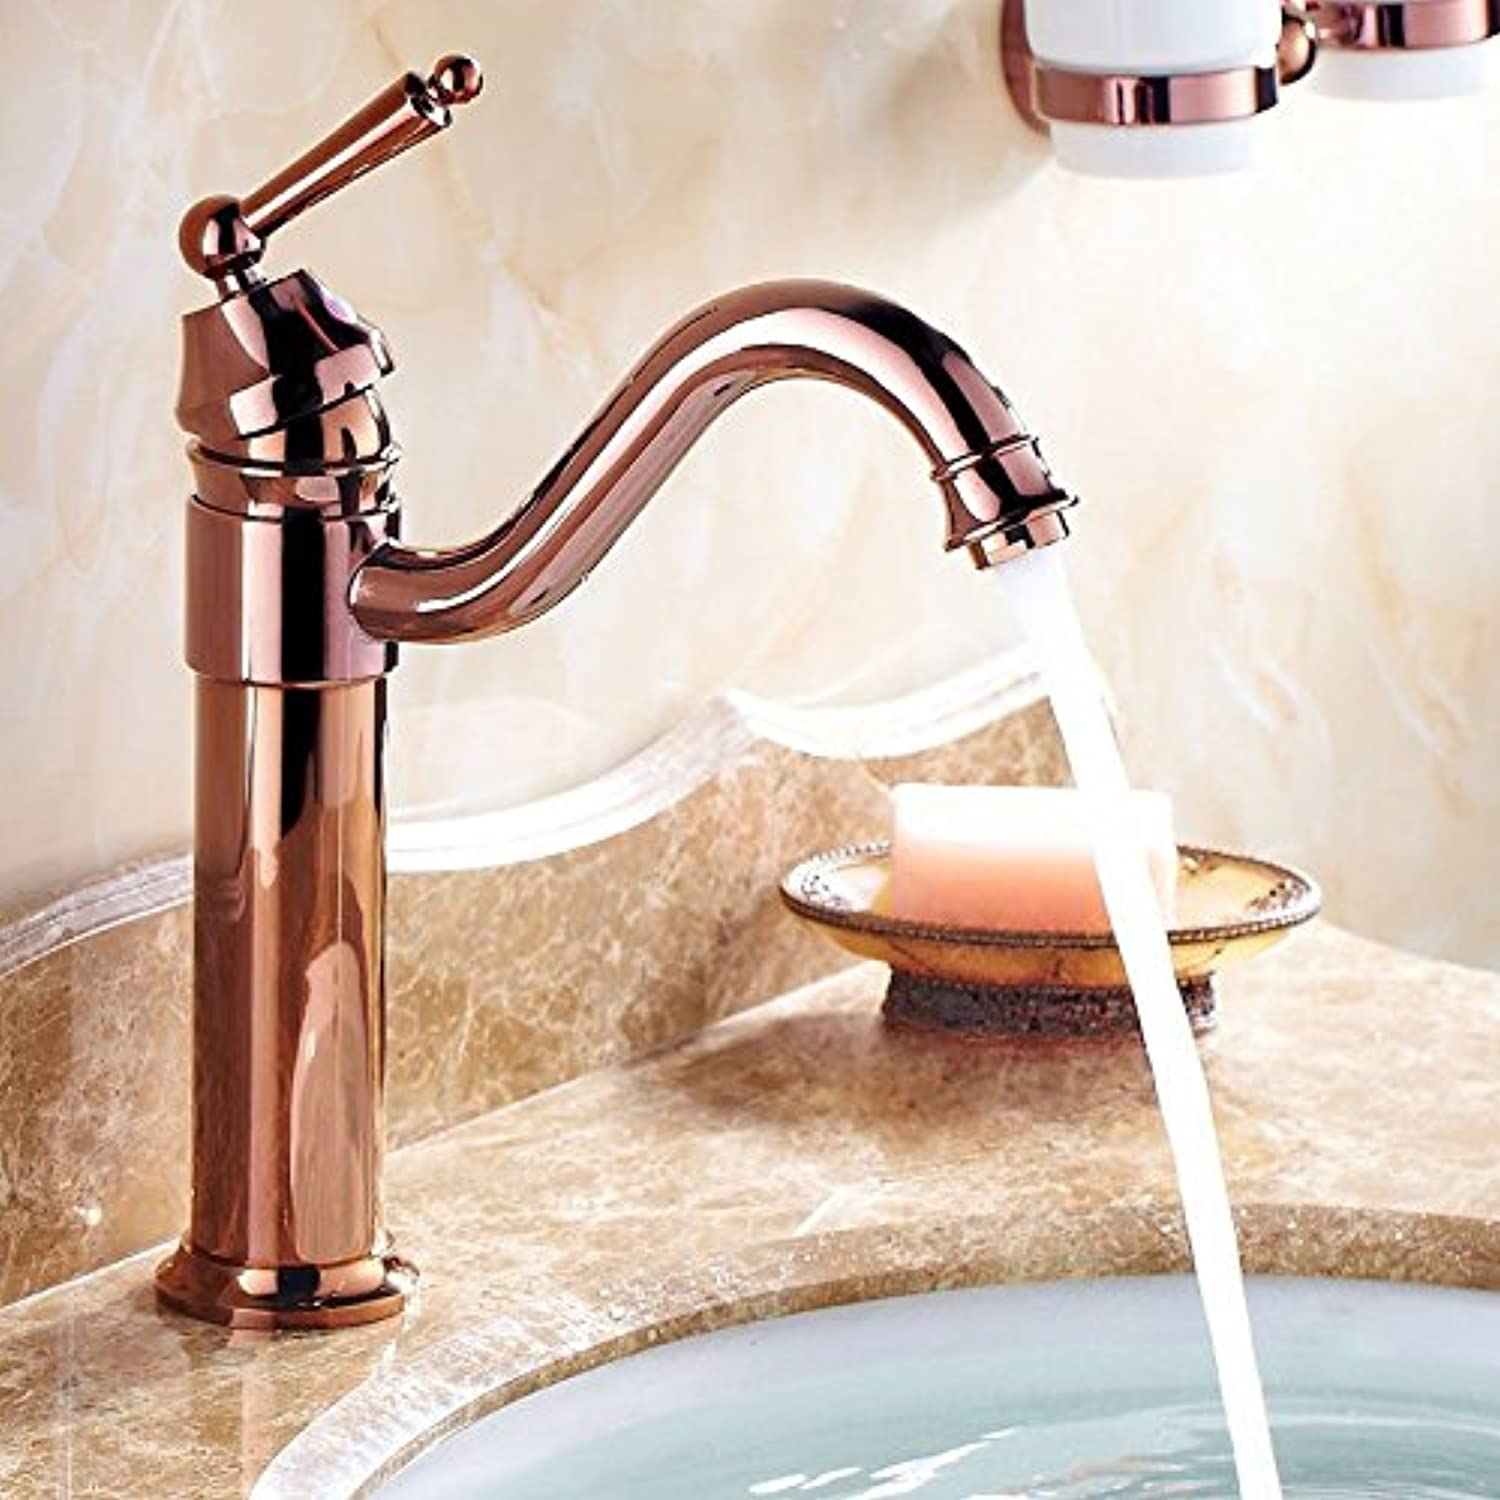 Gyps Faucet Basin Mixer Tap Waterfall Faucet Antique Bathroom Mixer Bar Mixer Shower Set Tap antique bathroom faucet Antique copper-plated single handle single hole of hot and cold water basin mixer r